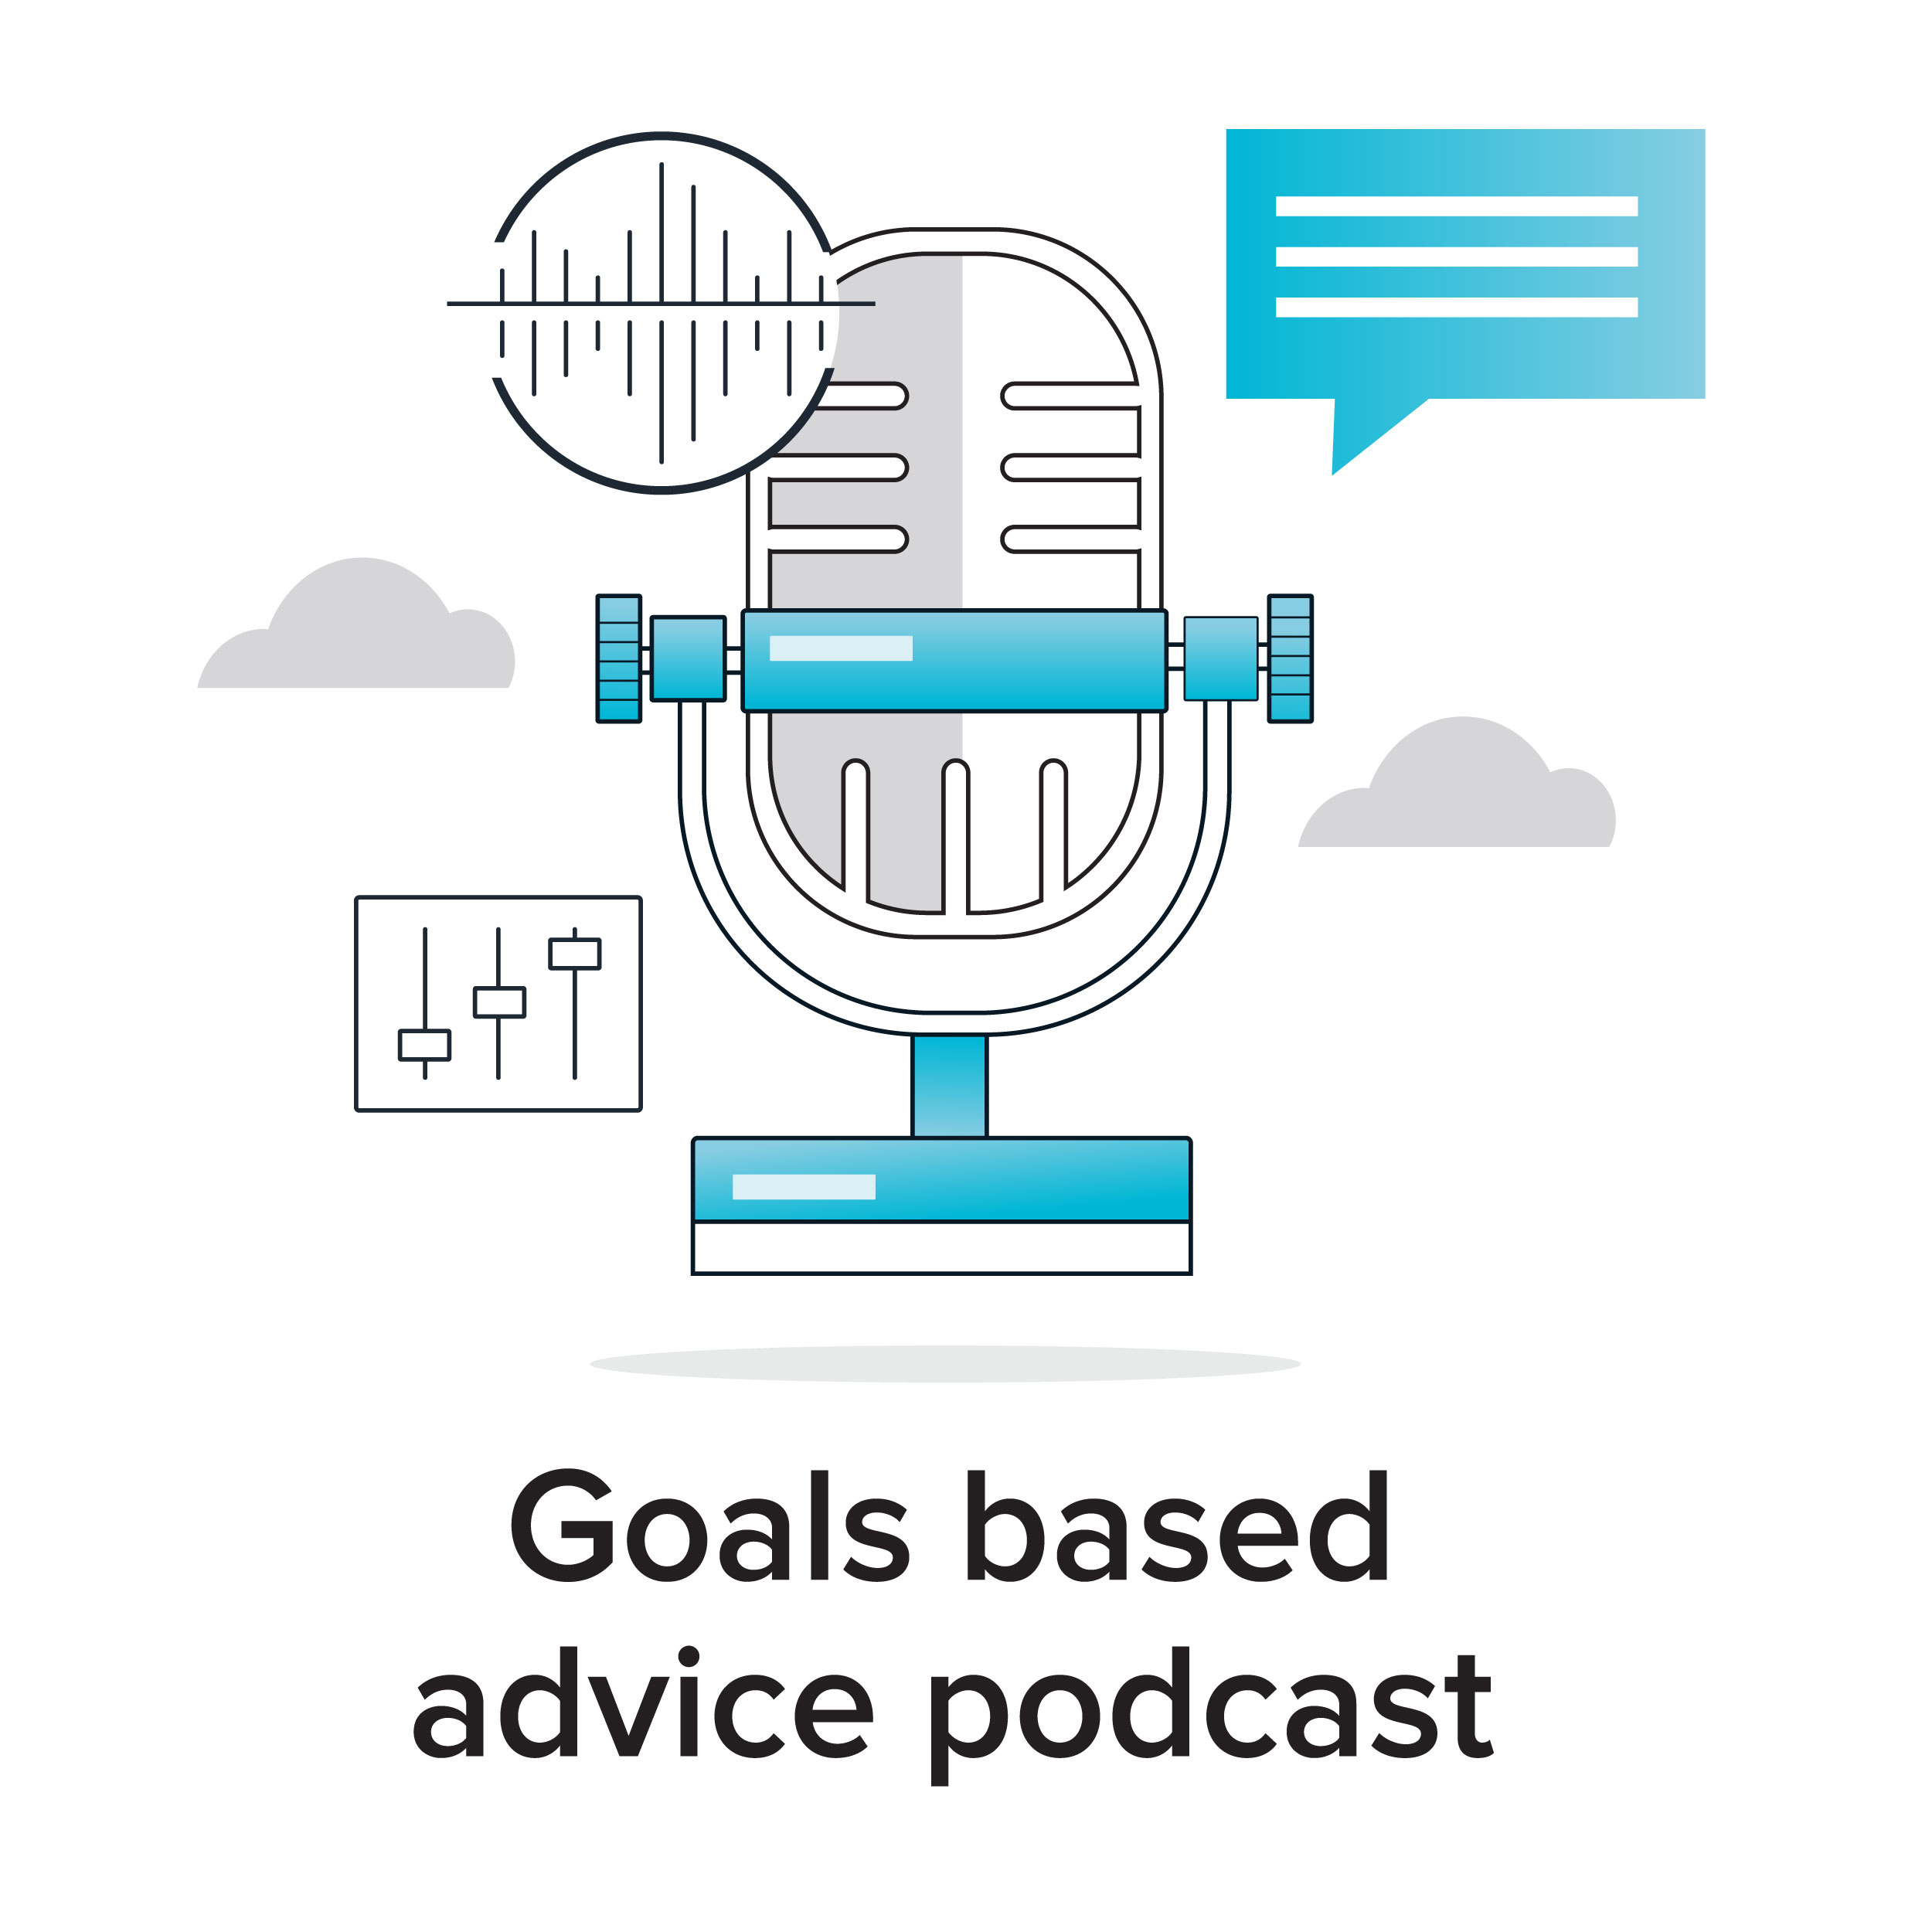 The Goals Based Advice Podcast